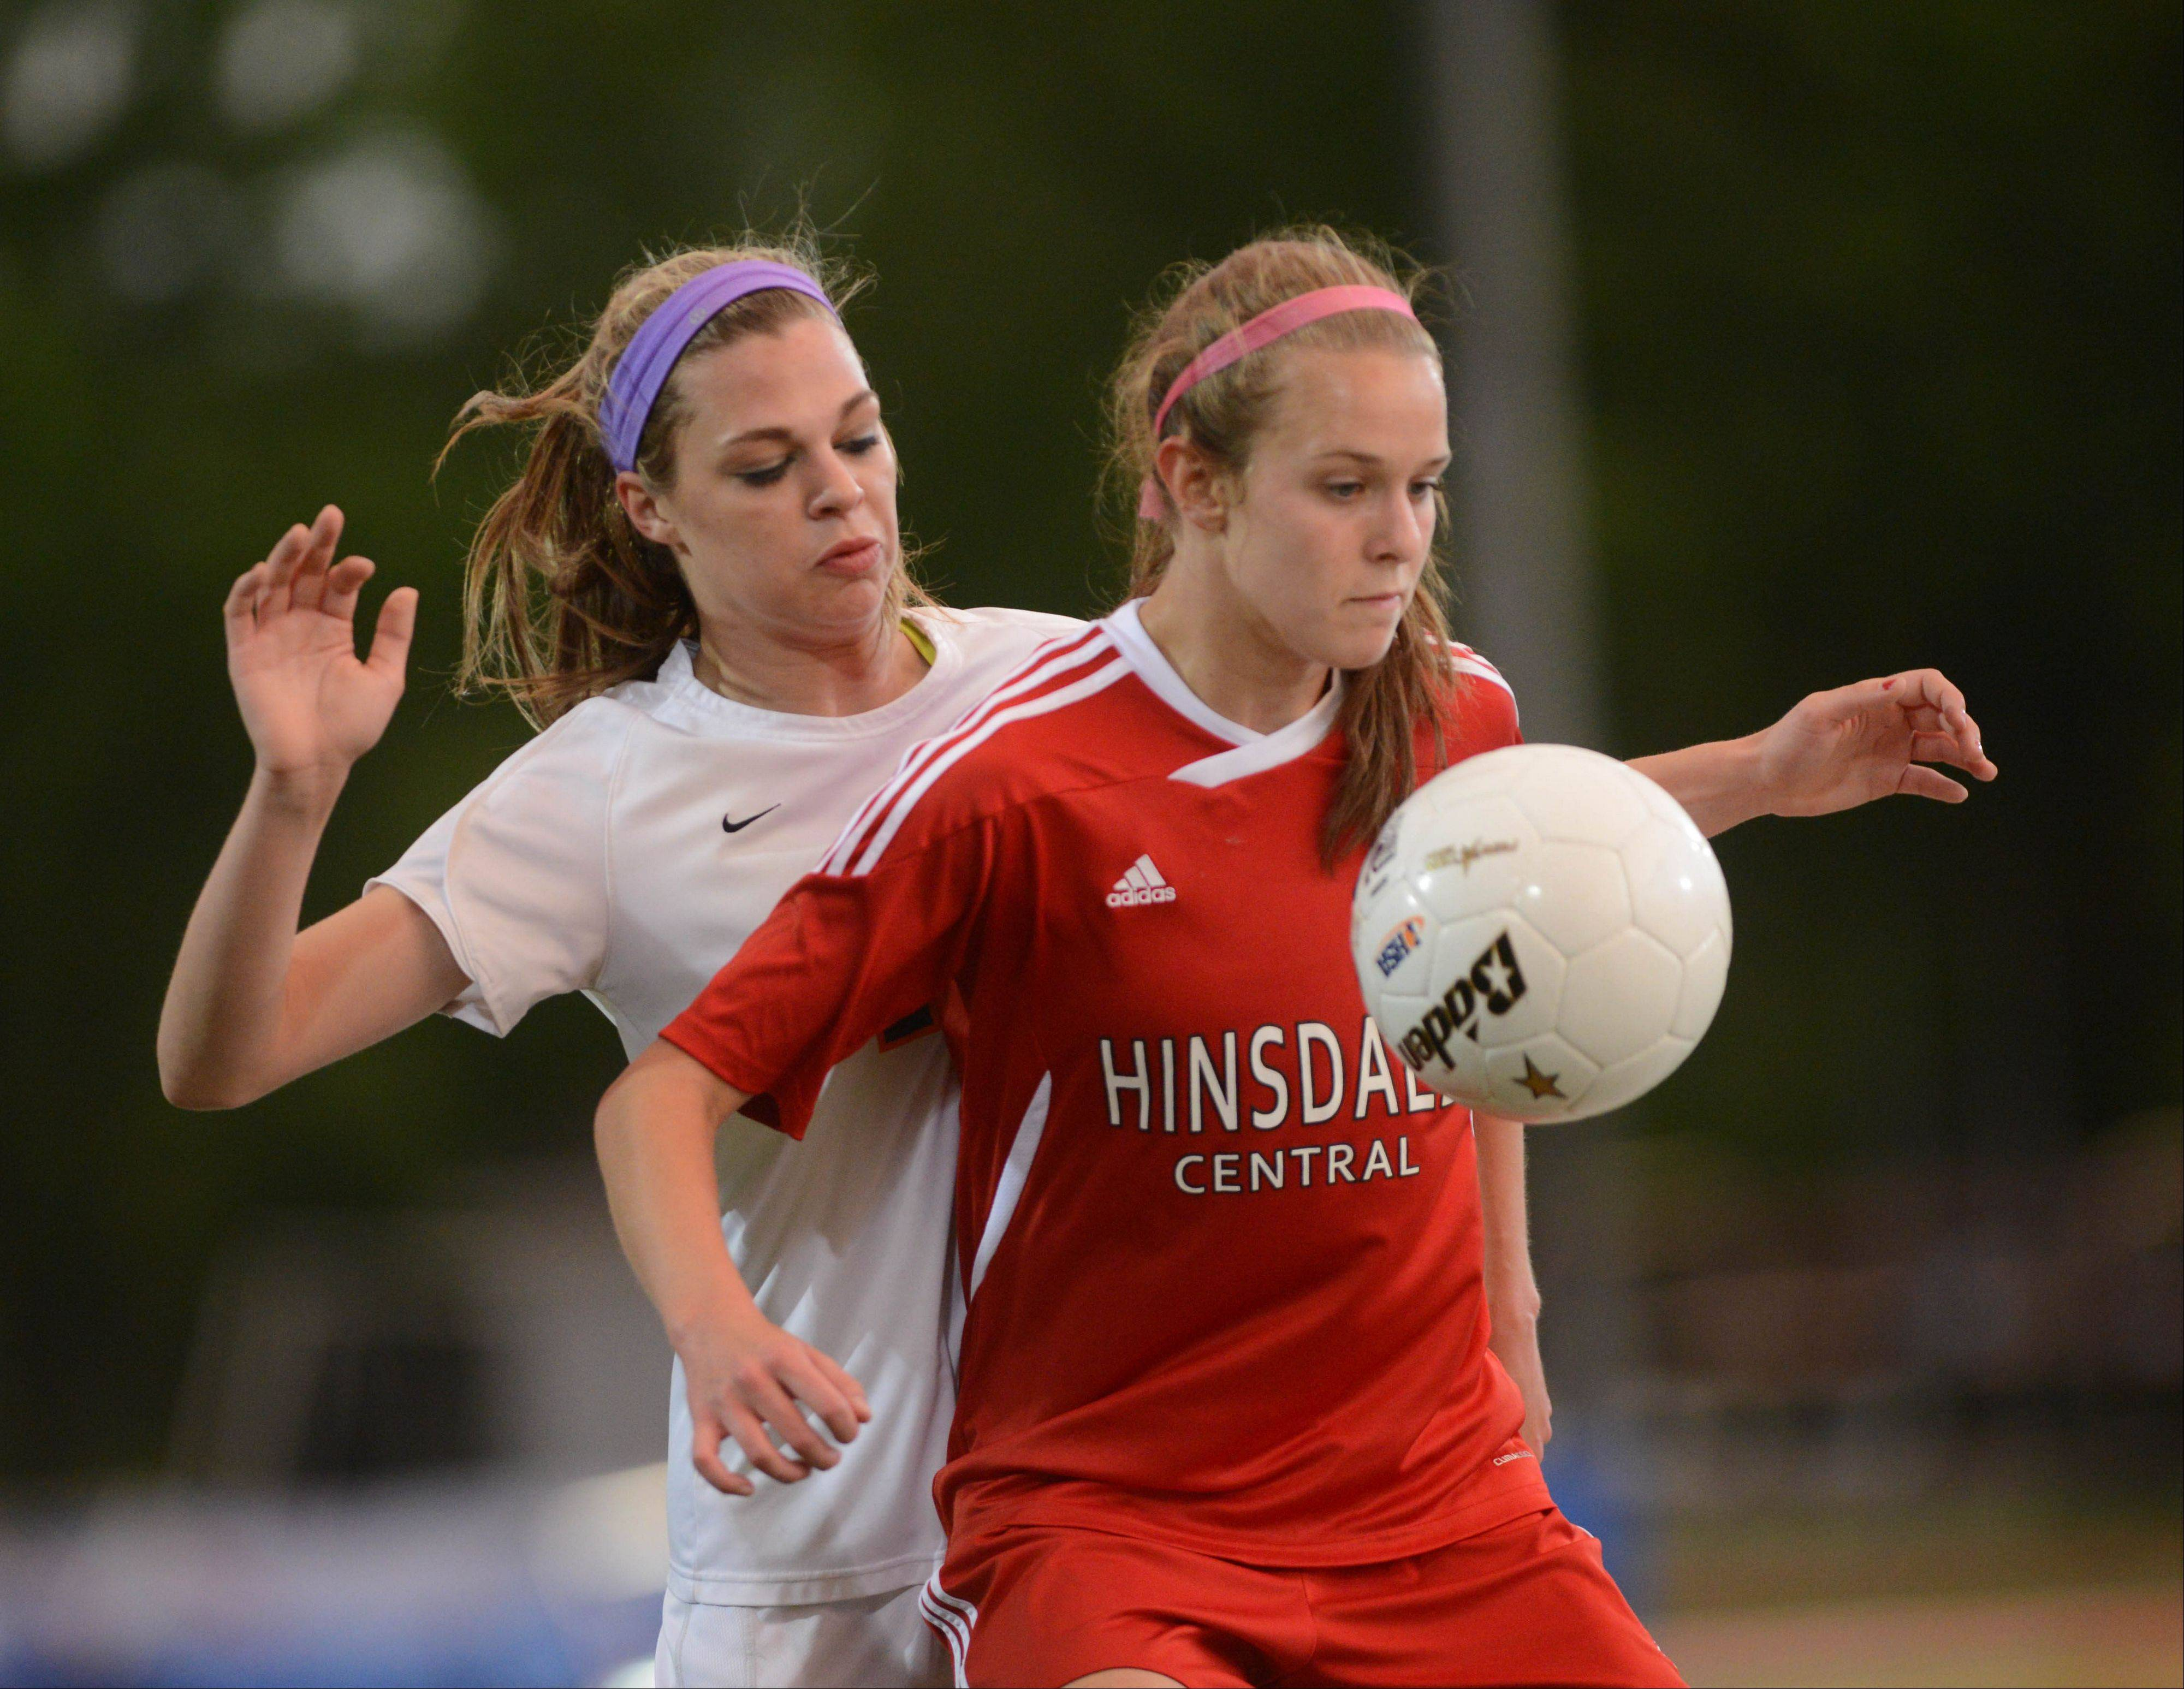 Abby Mangefrida of Naperville North and Casey May of Hinsdale Central vie for the ball during the Class 3A girls soccer championship in Naperville Saturday.